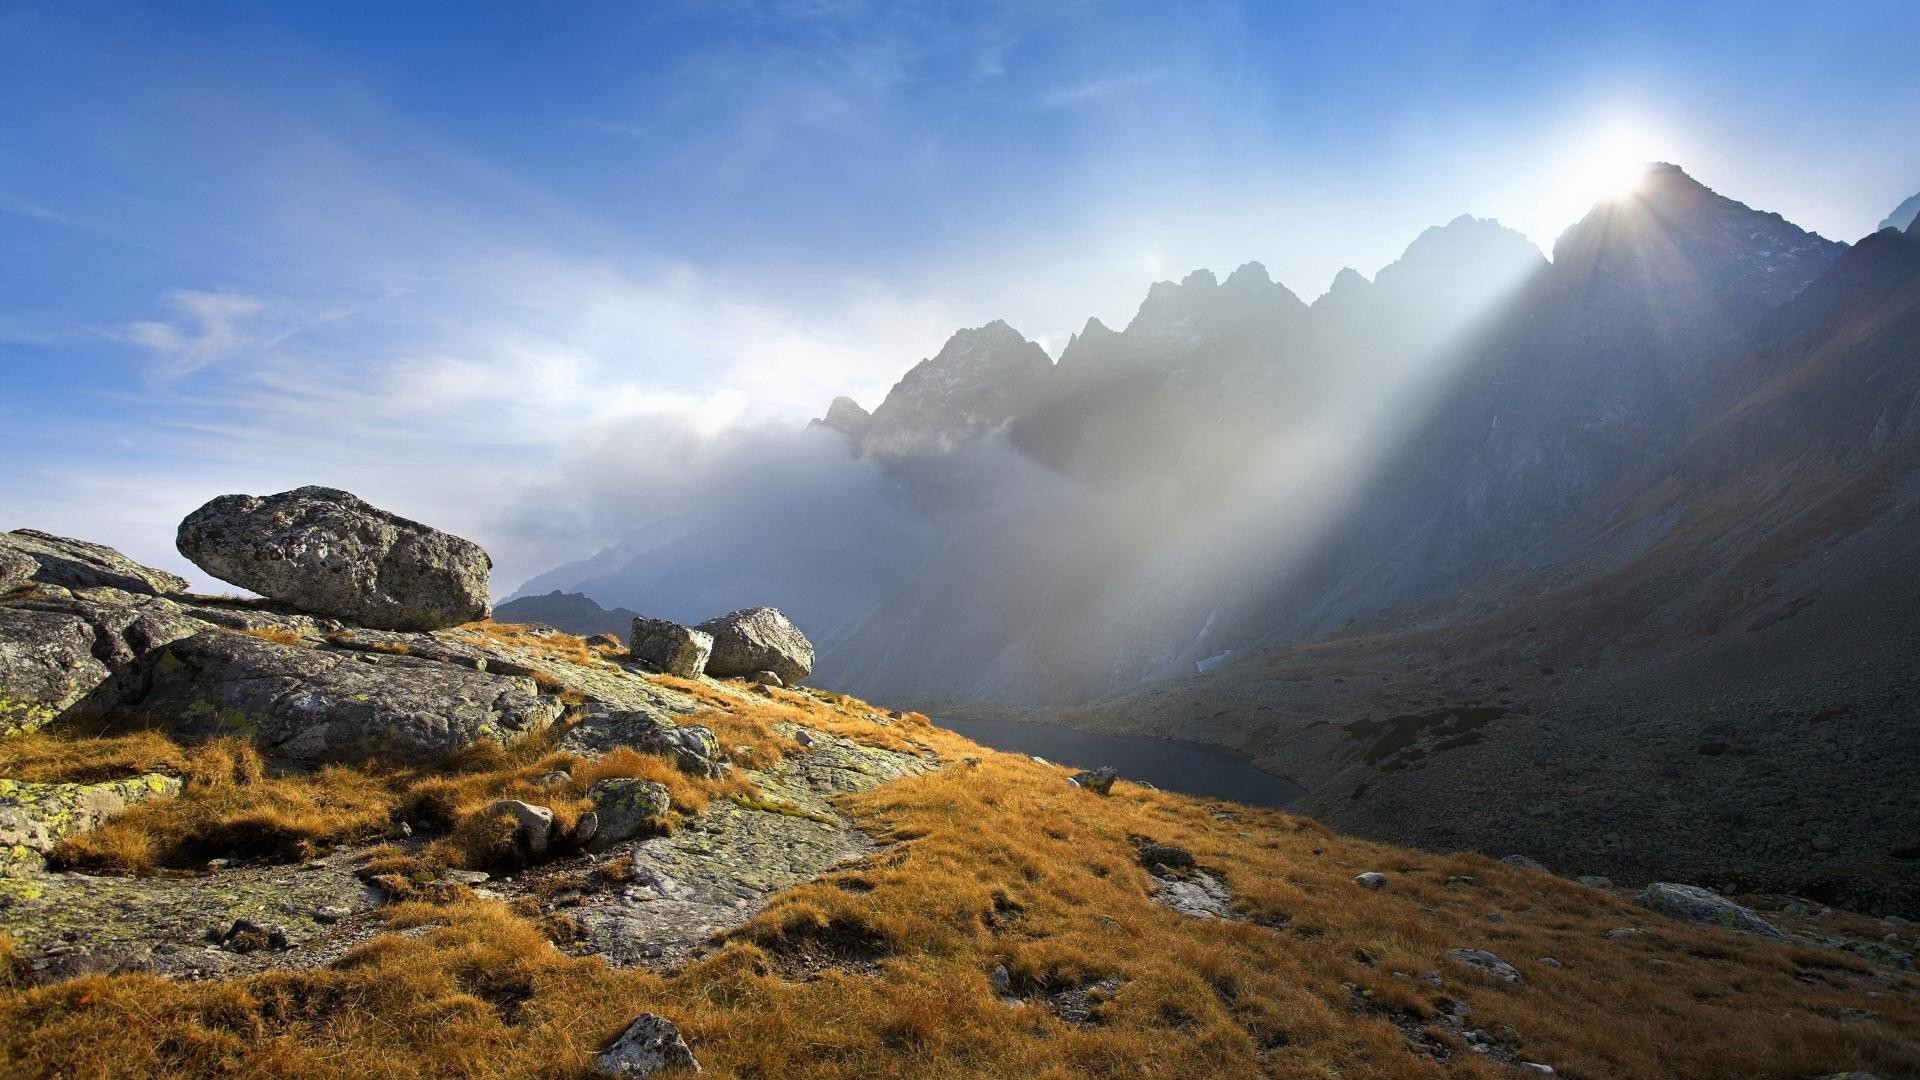 desktop backgrounds background mountains pc laptop tablet vertical awesome wallpapertag ipad resolution mobile android